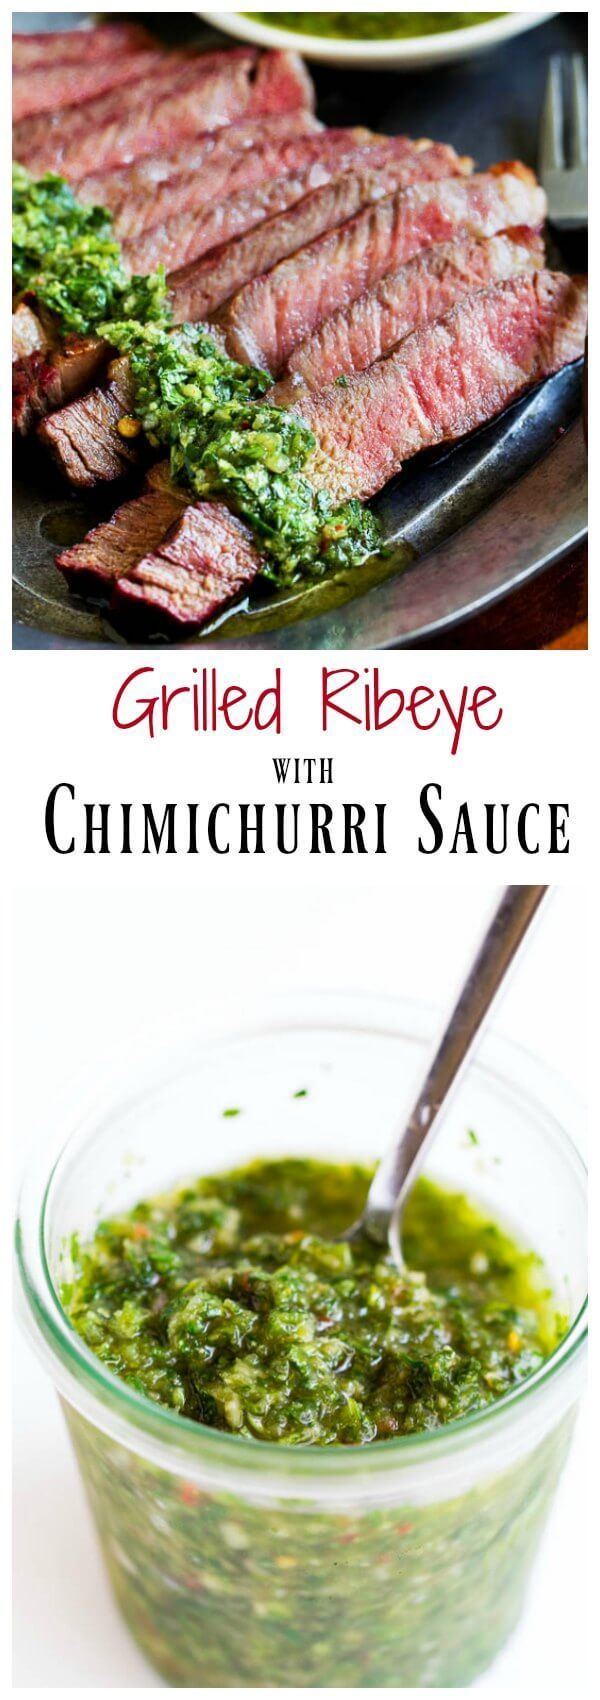 Melt-in-your-mouth tenderribeye steaks grilled to juicy perfection and…